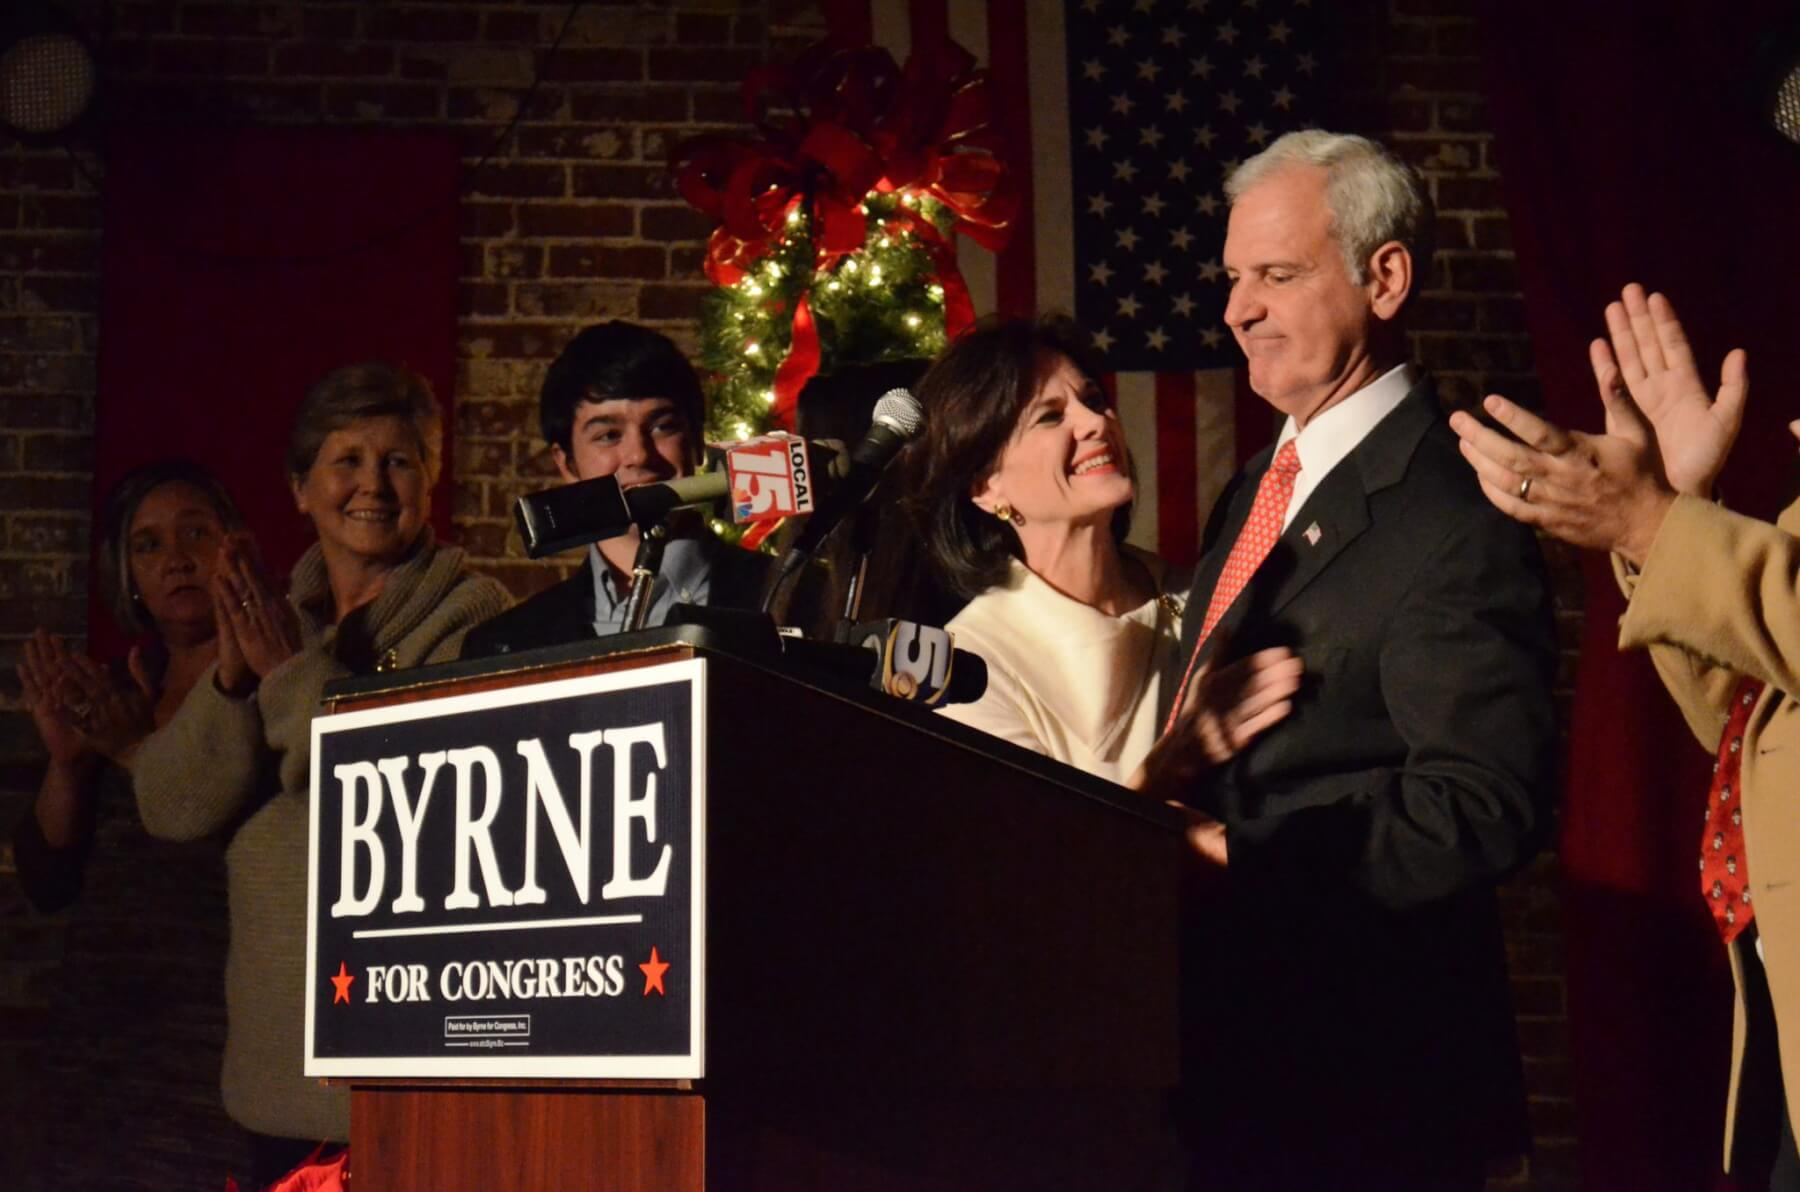 Byrne wins election to Congress